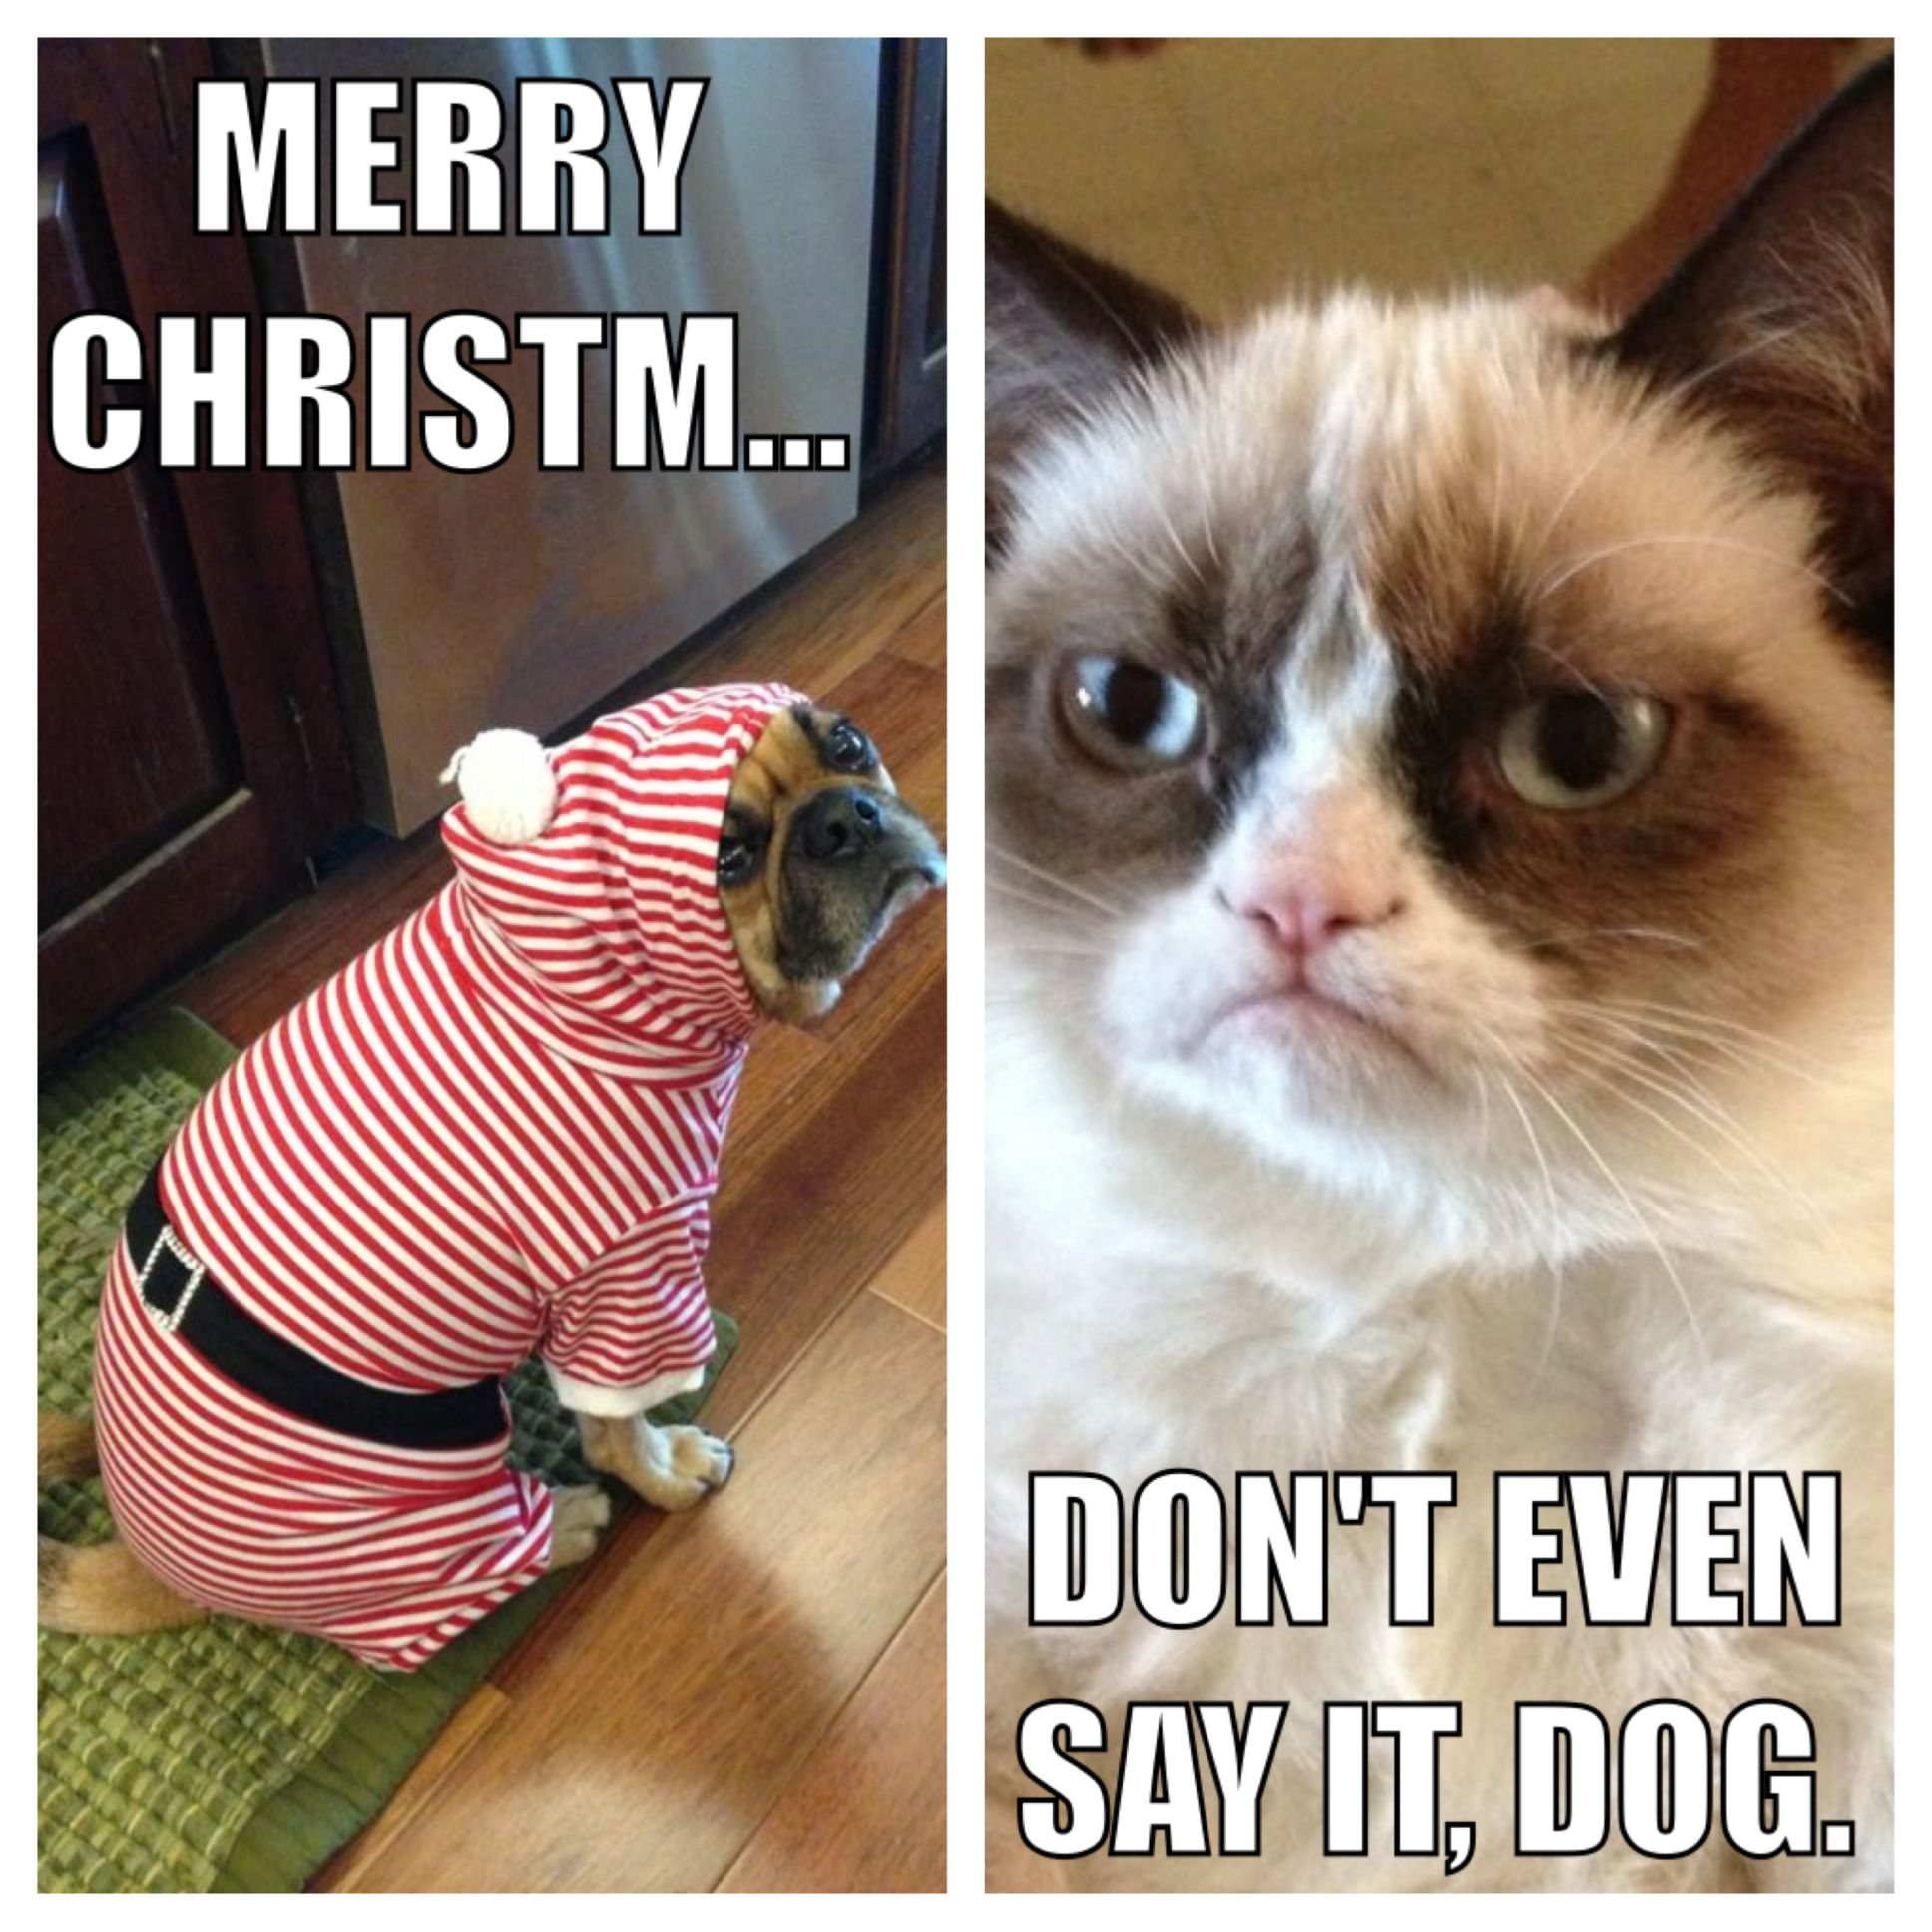 Grumpy Dog and Angry Cat talk Christmas. Grumpy dog, Cat